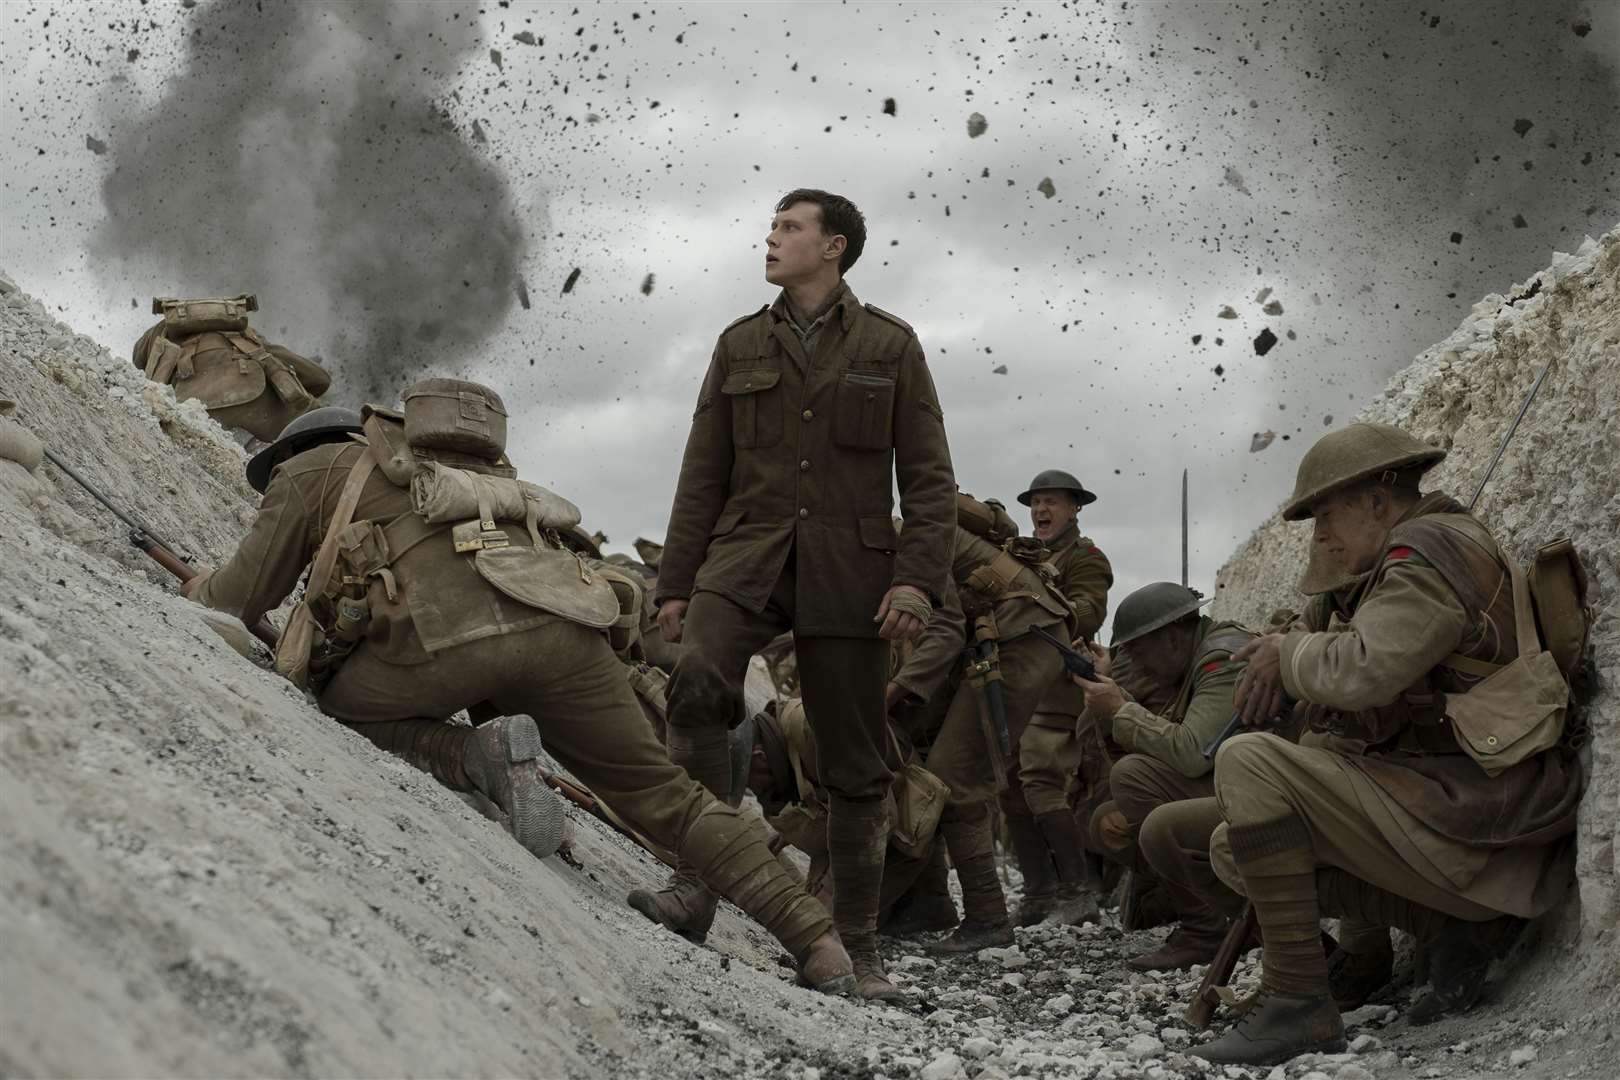 George MacKay as Lance Corporal William Schofield in 1917. Picture: Universal Pictures / DreamWorks Pictures / Storyteller Distribution Co, LLC/Francois Duhamel